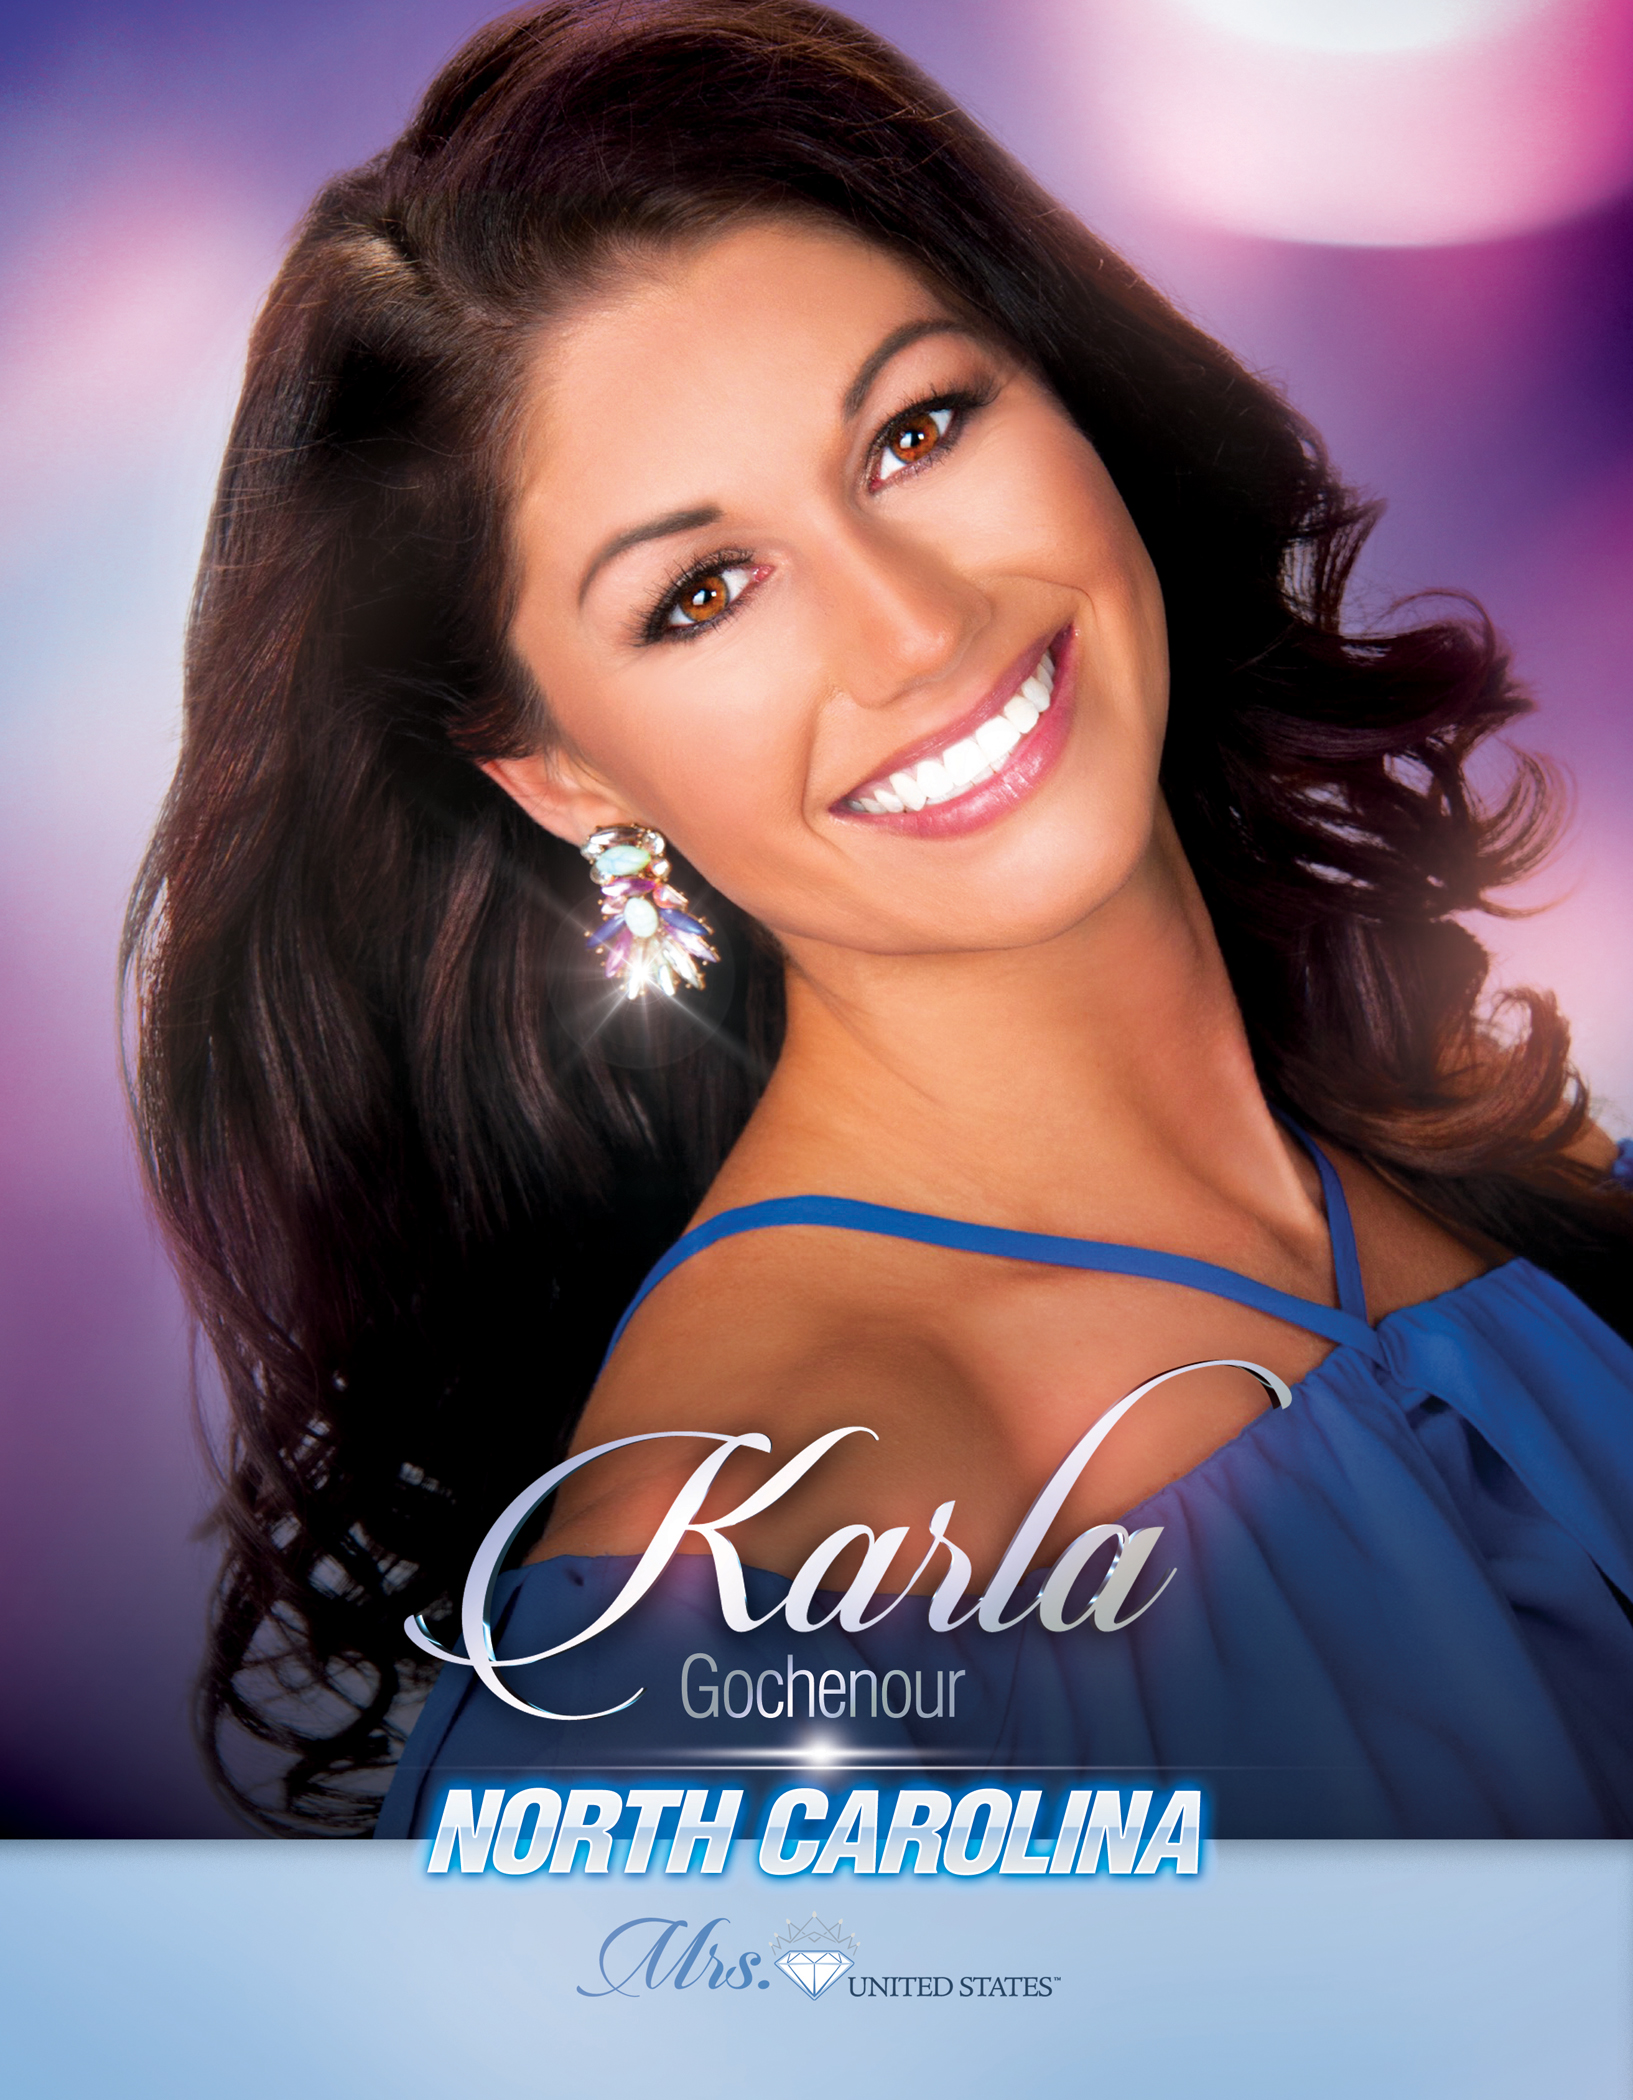 Karla Gochenour Mrs. North Carolina United States - 2019